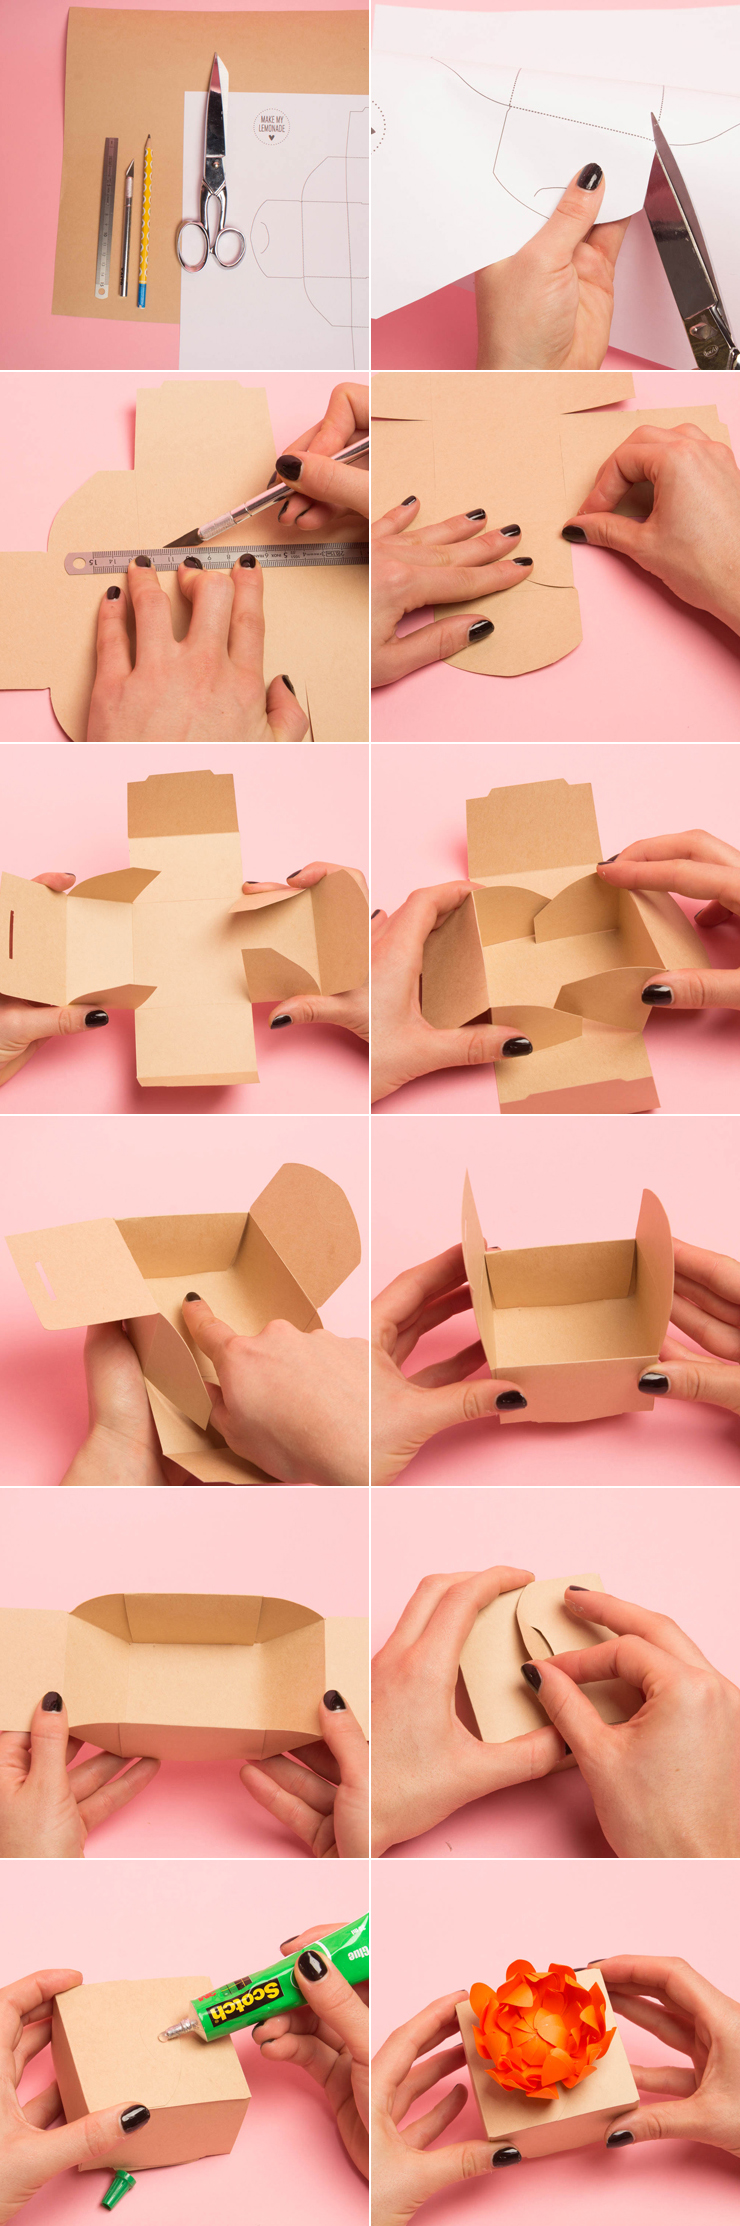 make-my-lemonade-diy-do-it-yourself-boite-papier